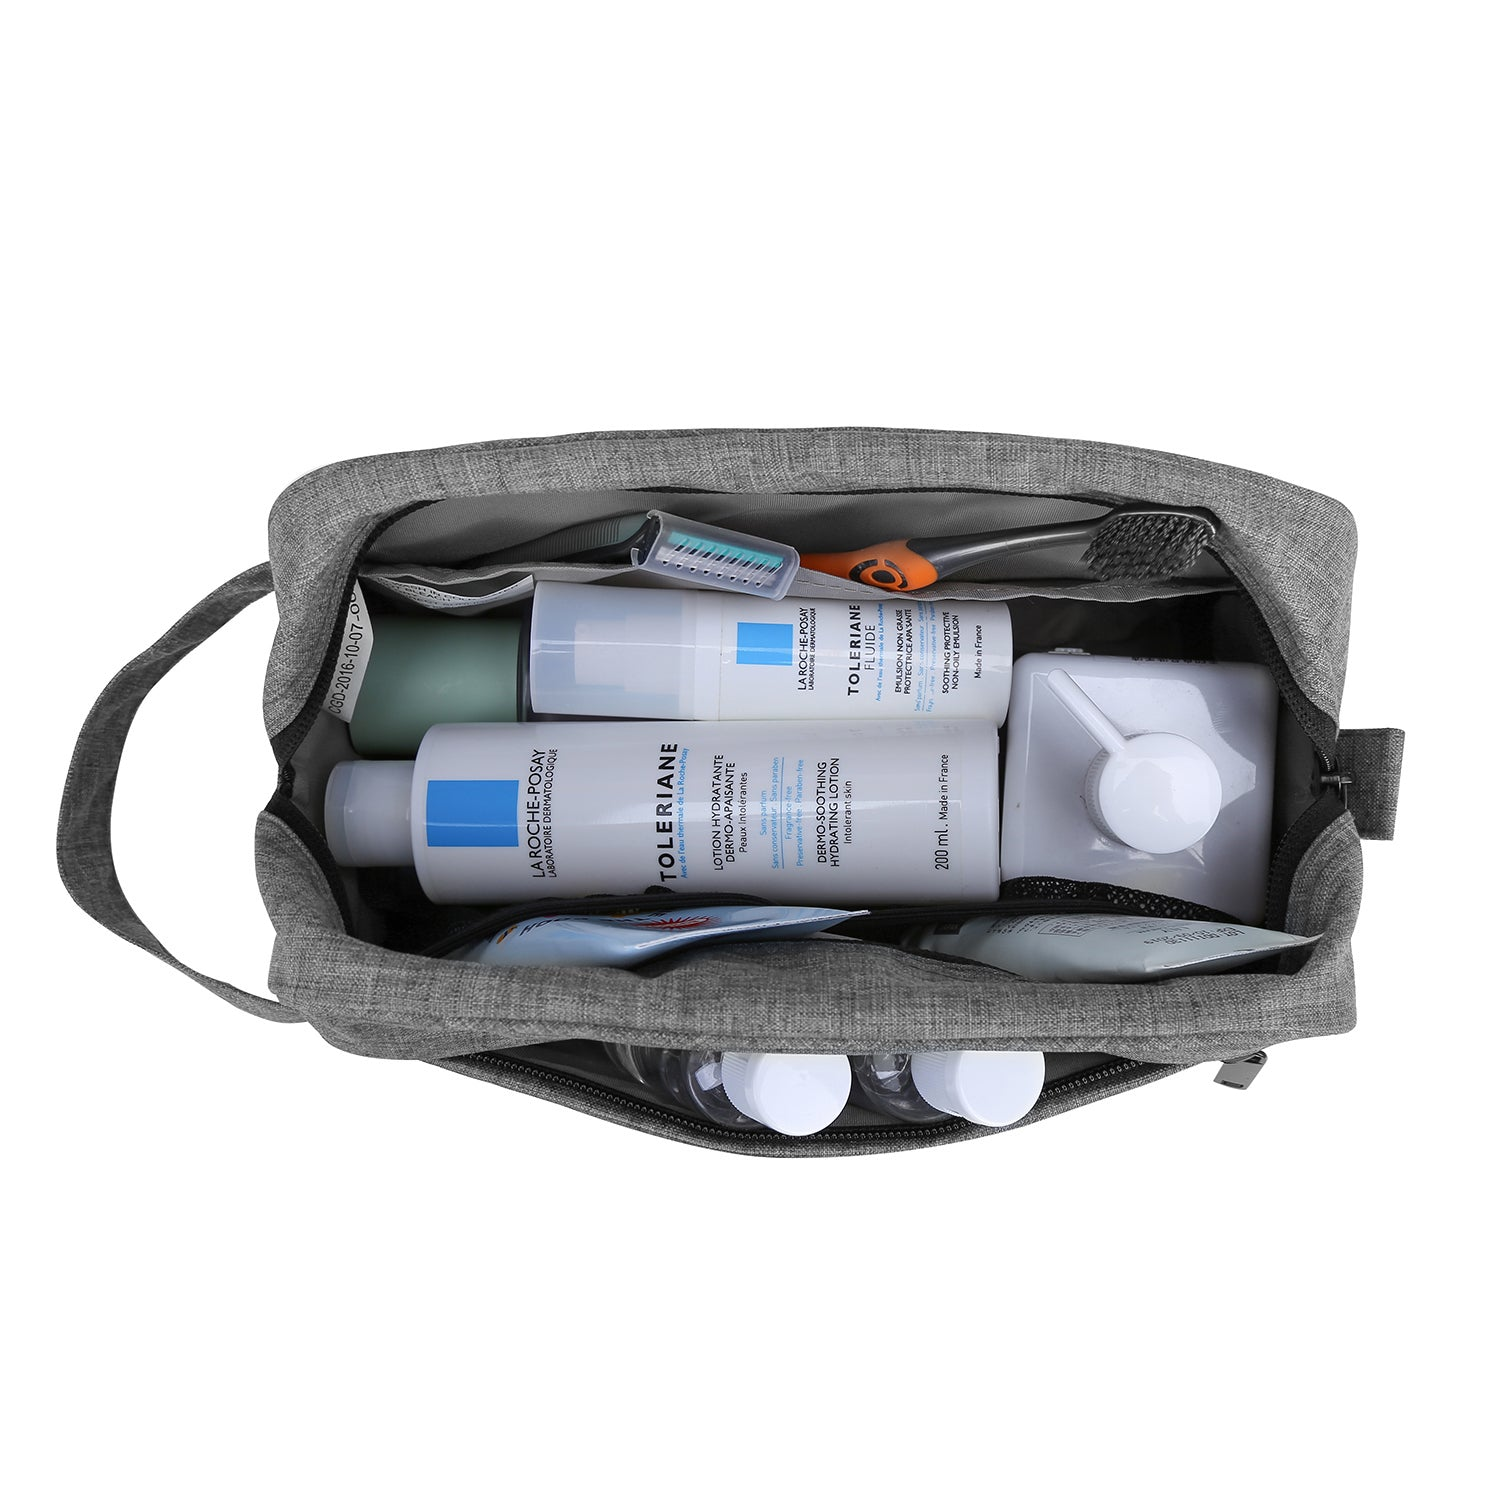 29da71bef6 Compact Waterproof Toiletry Travel Bag Organizer Handy Makeup Cosmetic Bag  Carry on Dopp Shaving Kit for